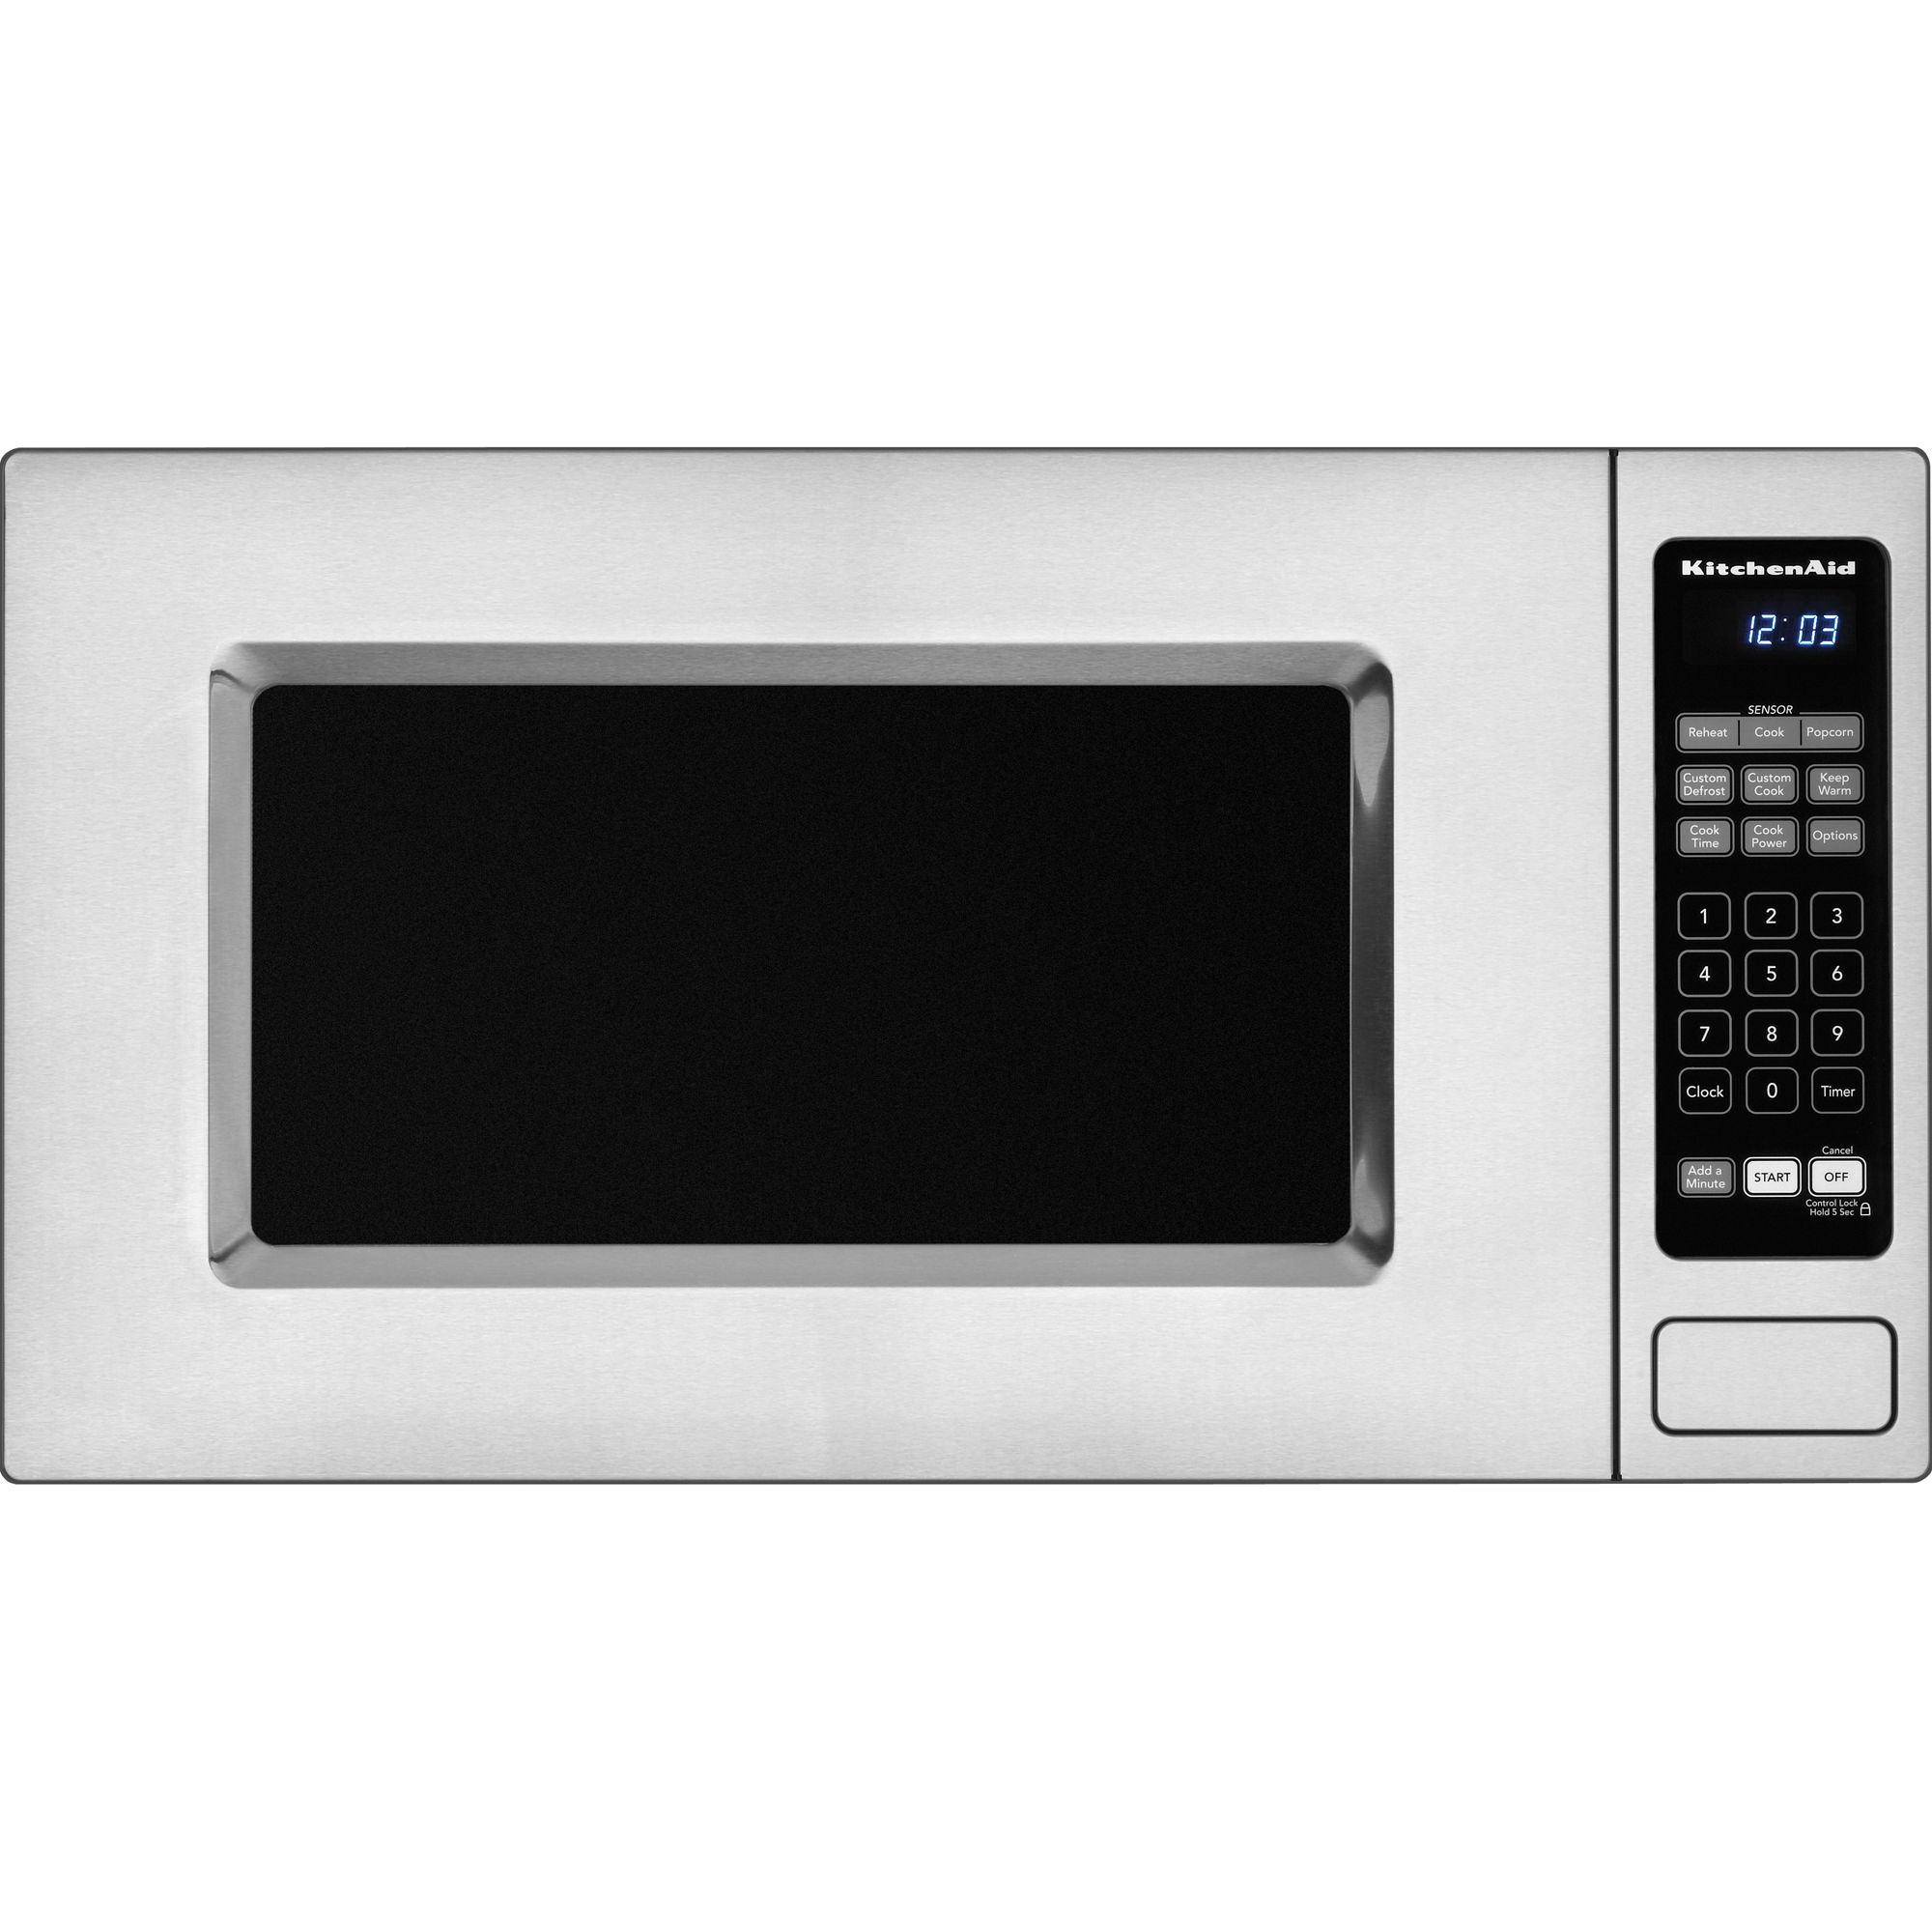 kitchen aid microwaves personalized gifts kitchenaid 22 15 cu ft countertop microwave oven